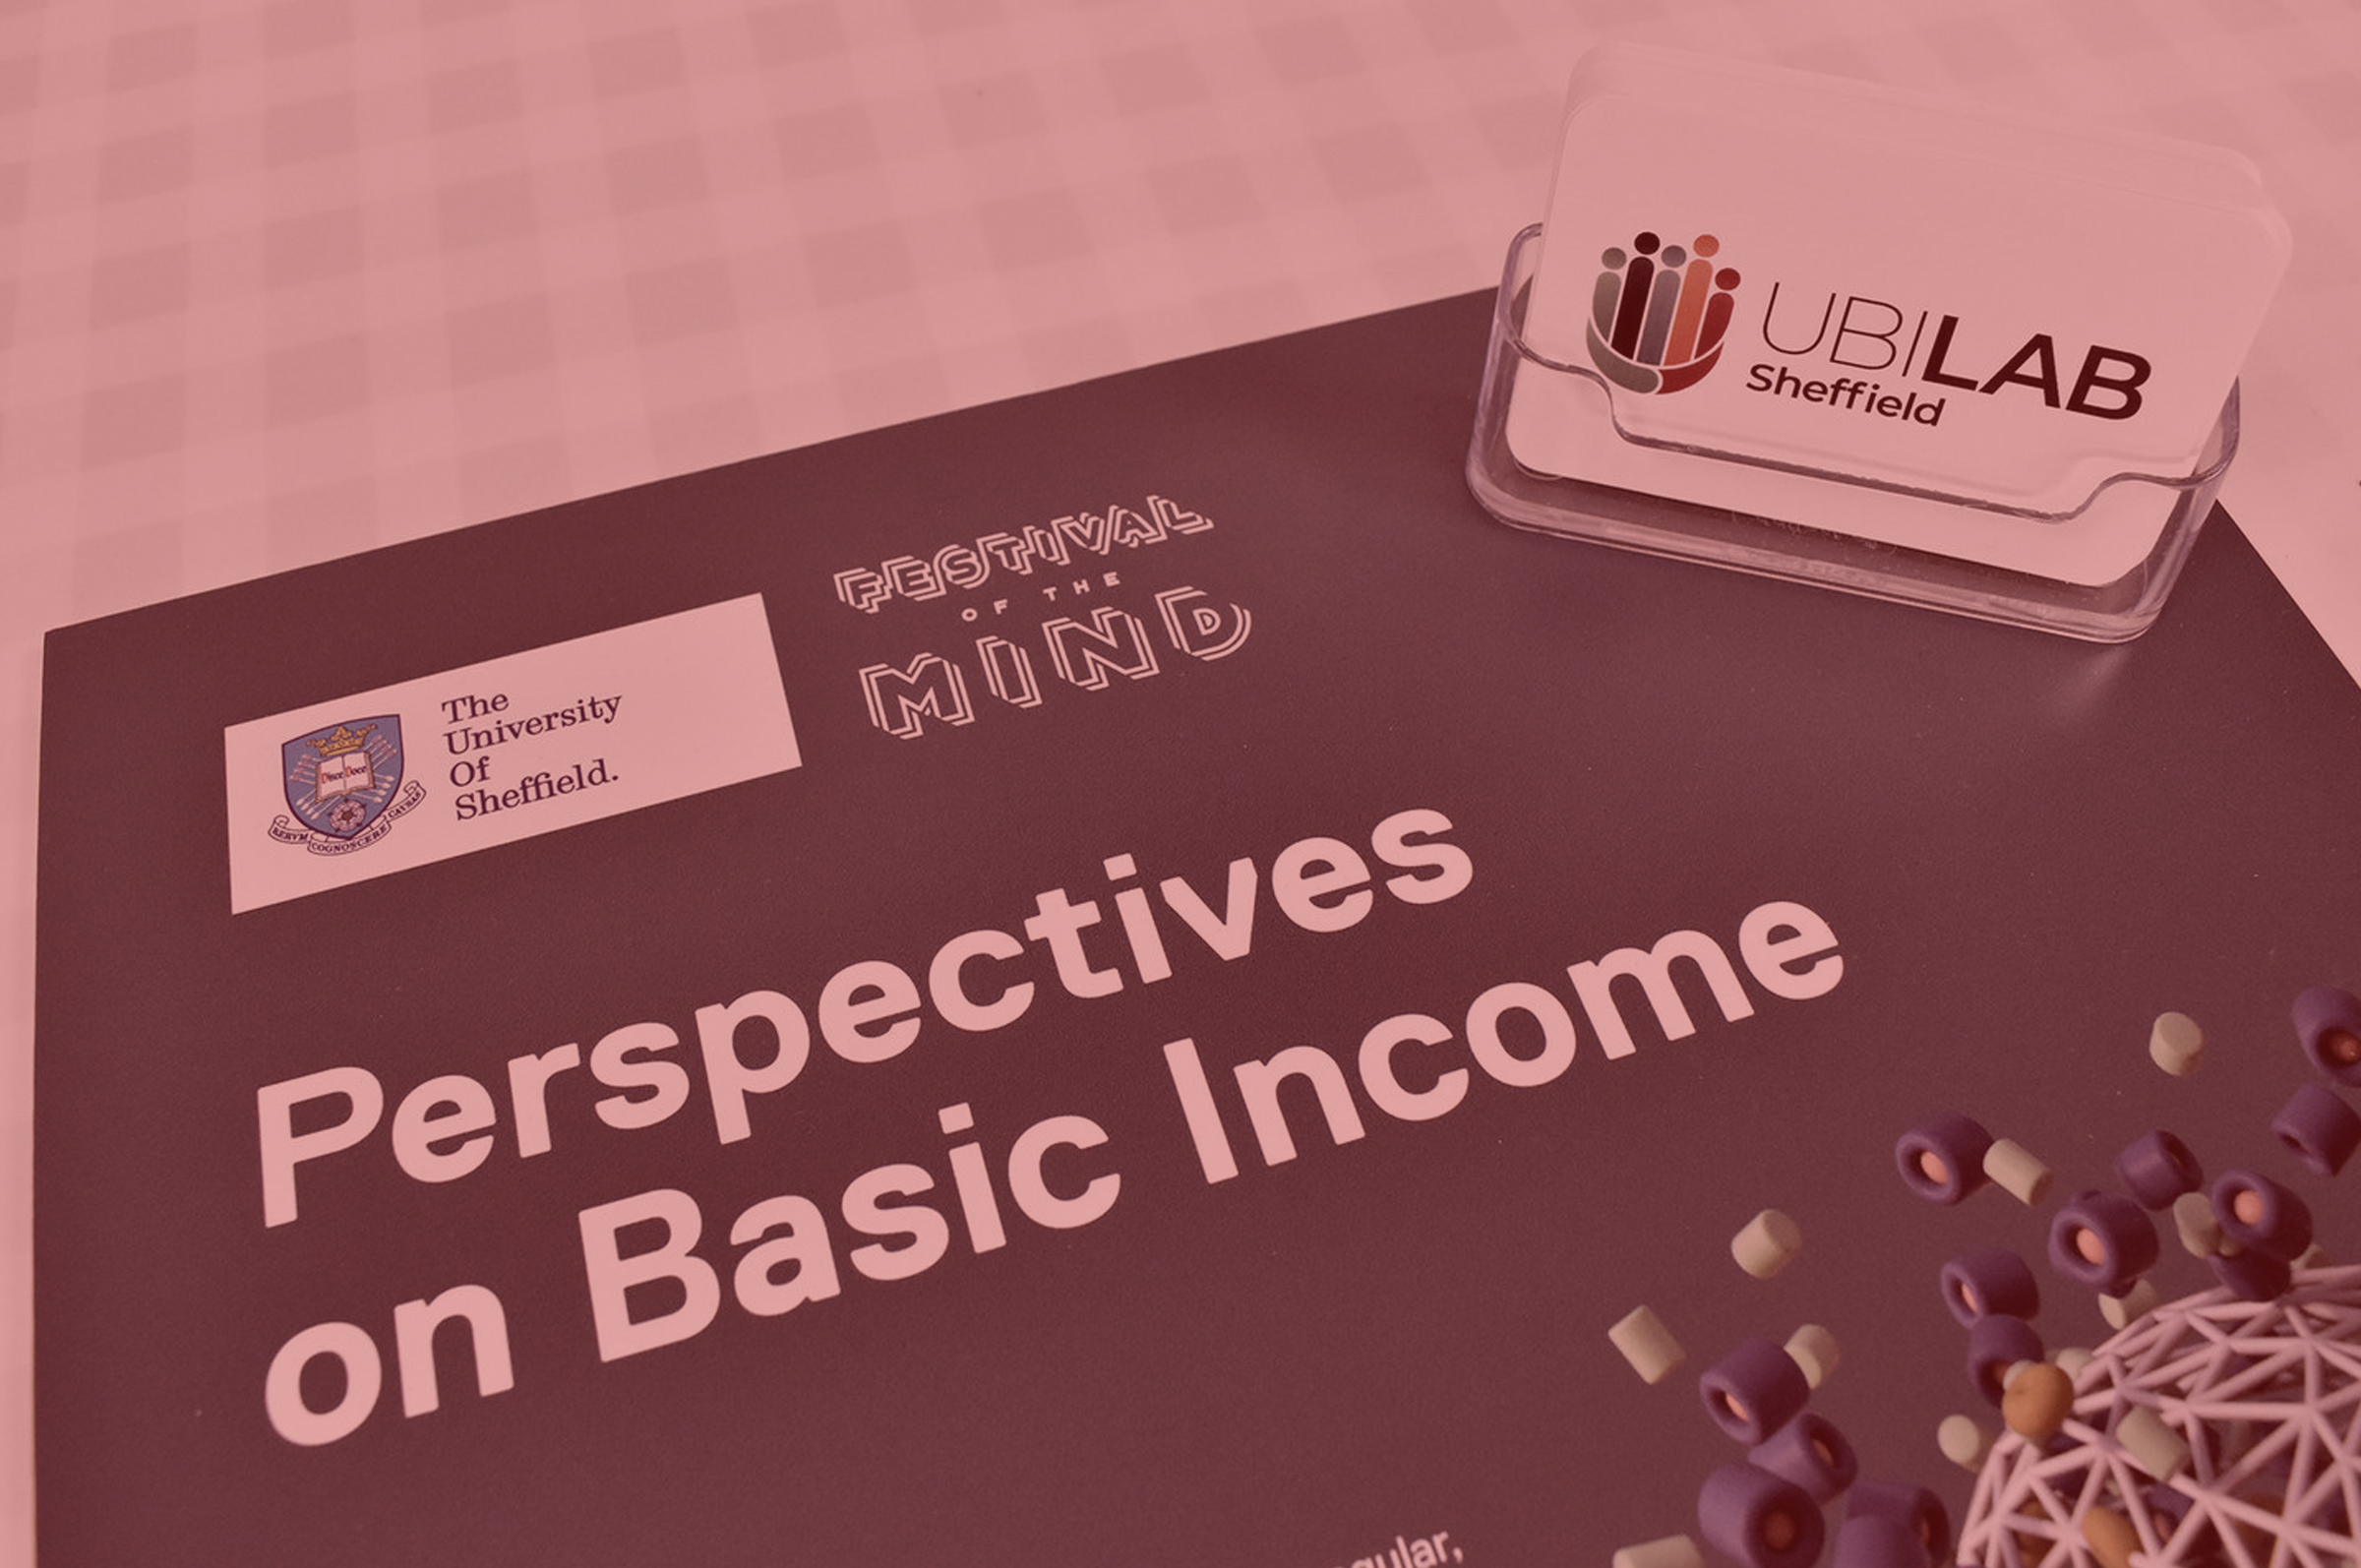 New Project Explores Basic Income in Sheffield - R.jpg